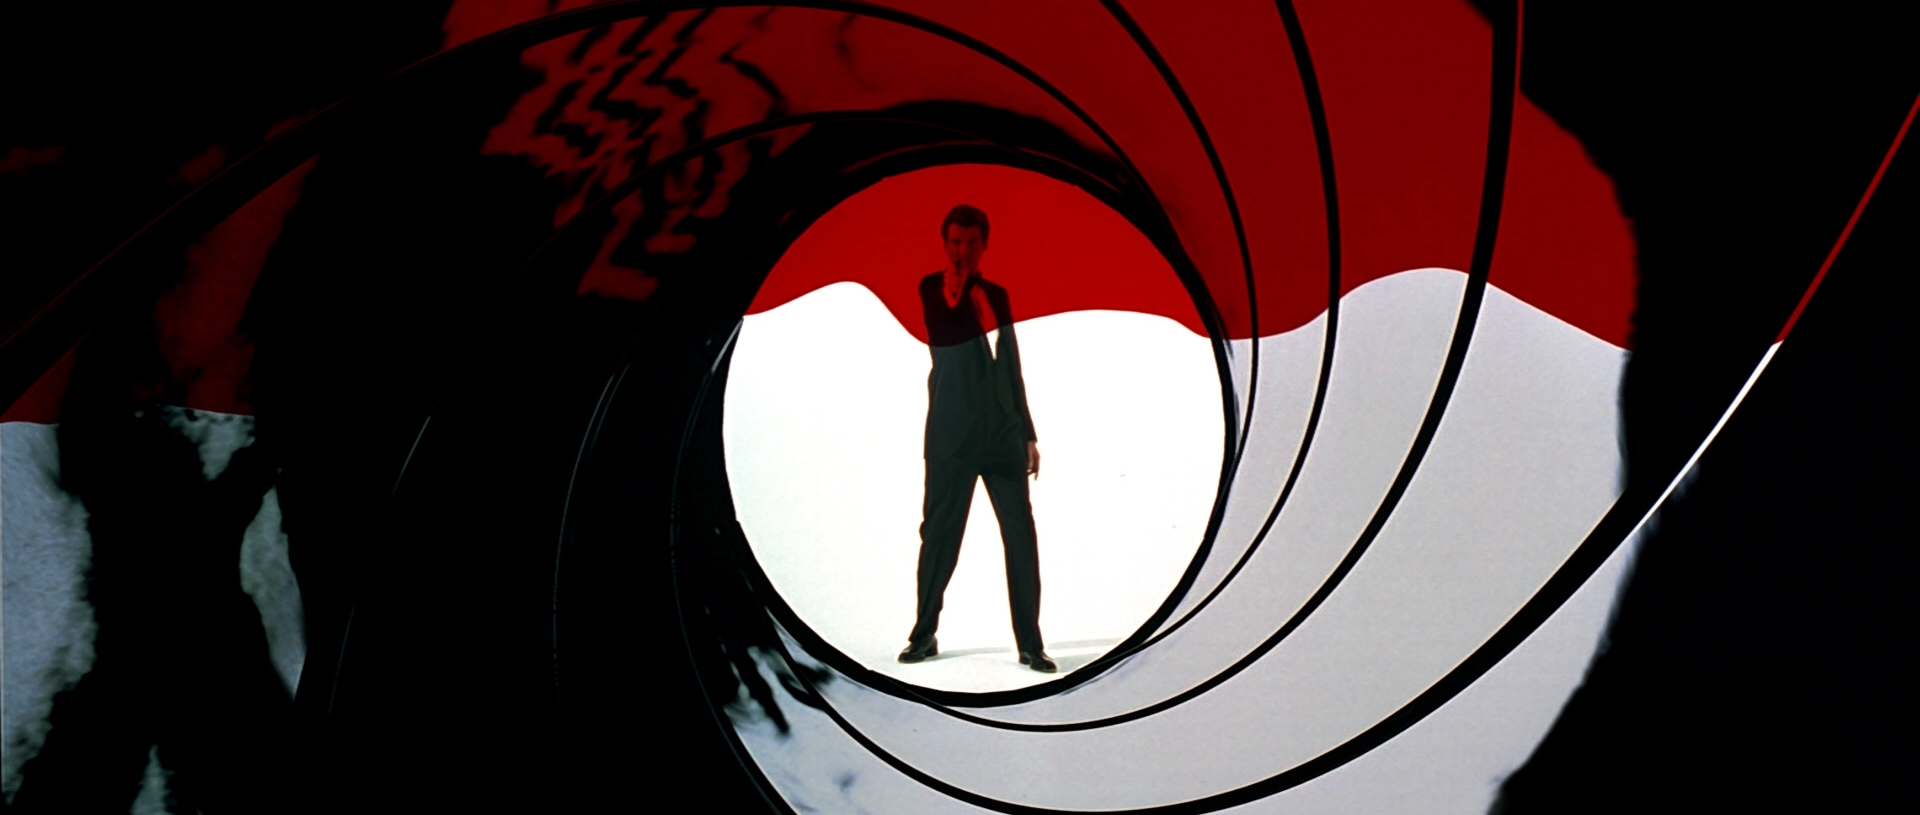 Wearables from the Bond films